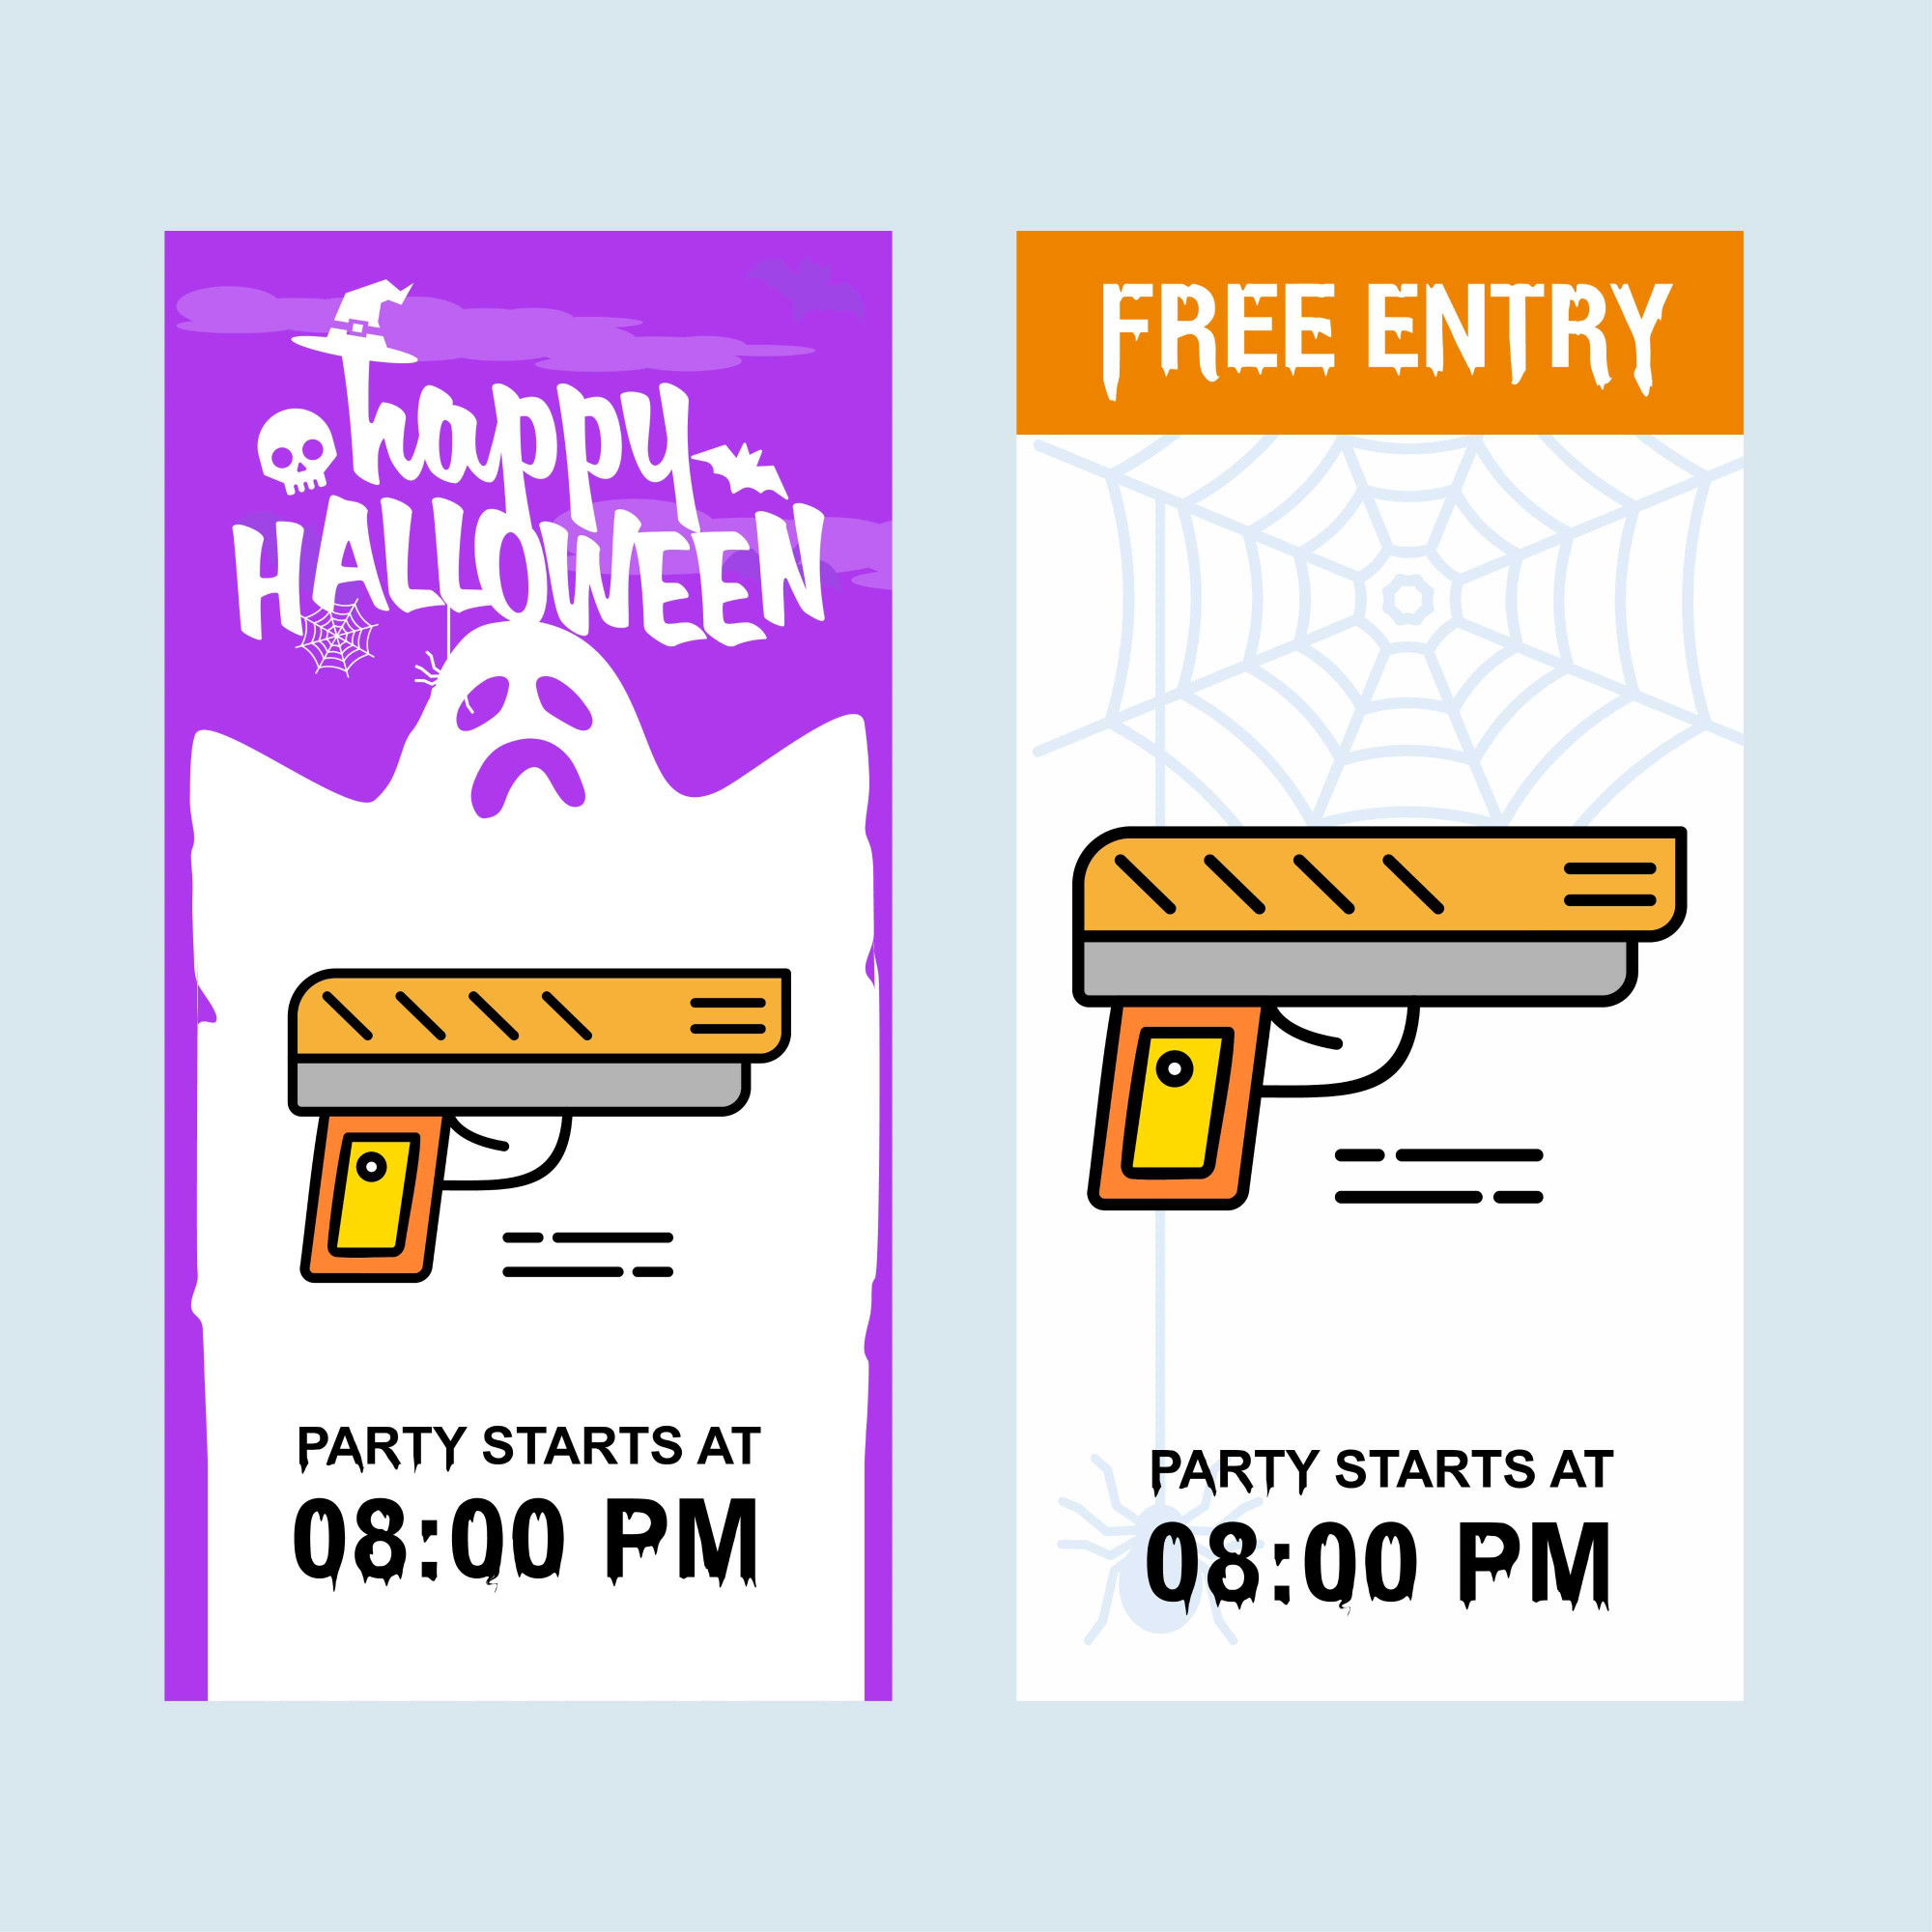 Happy Halloween invitation design with gun vector